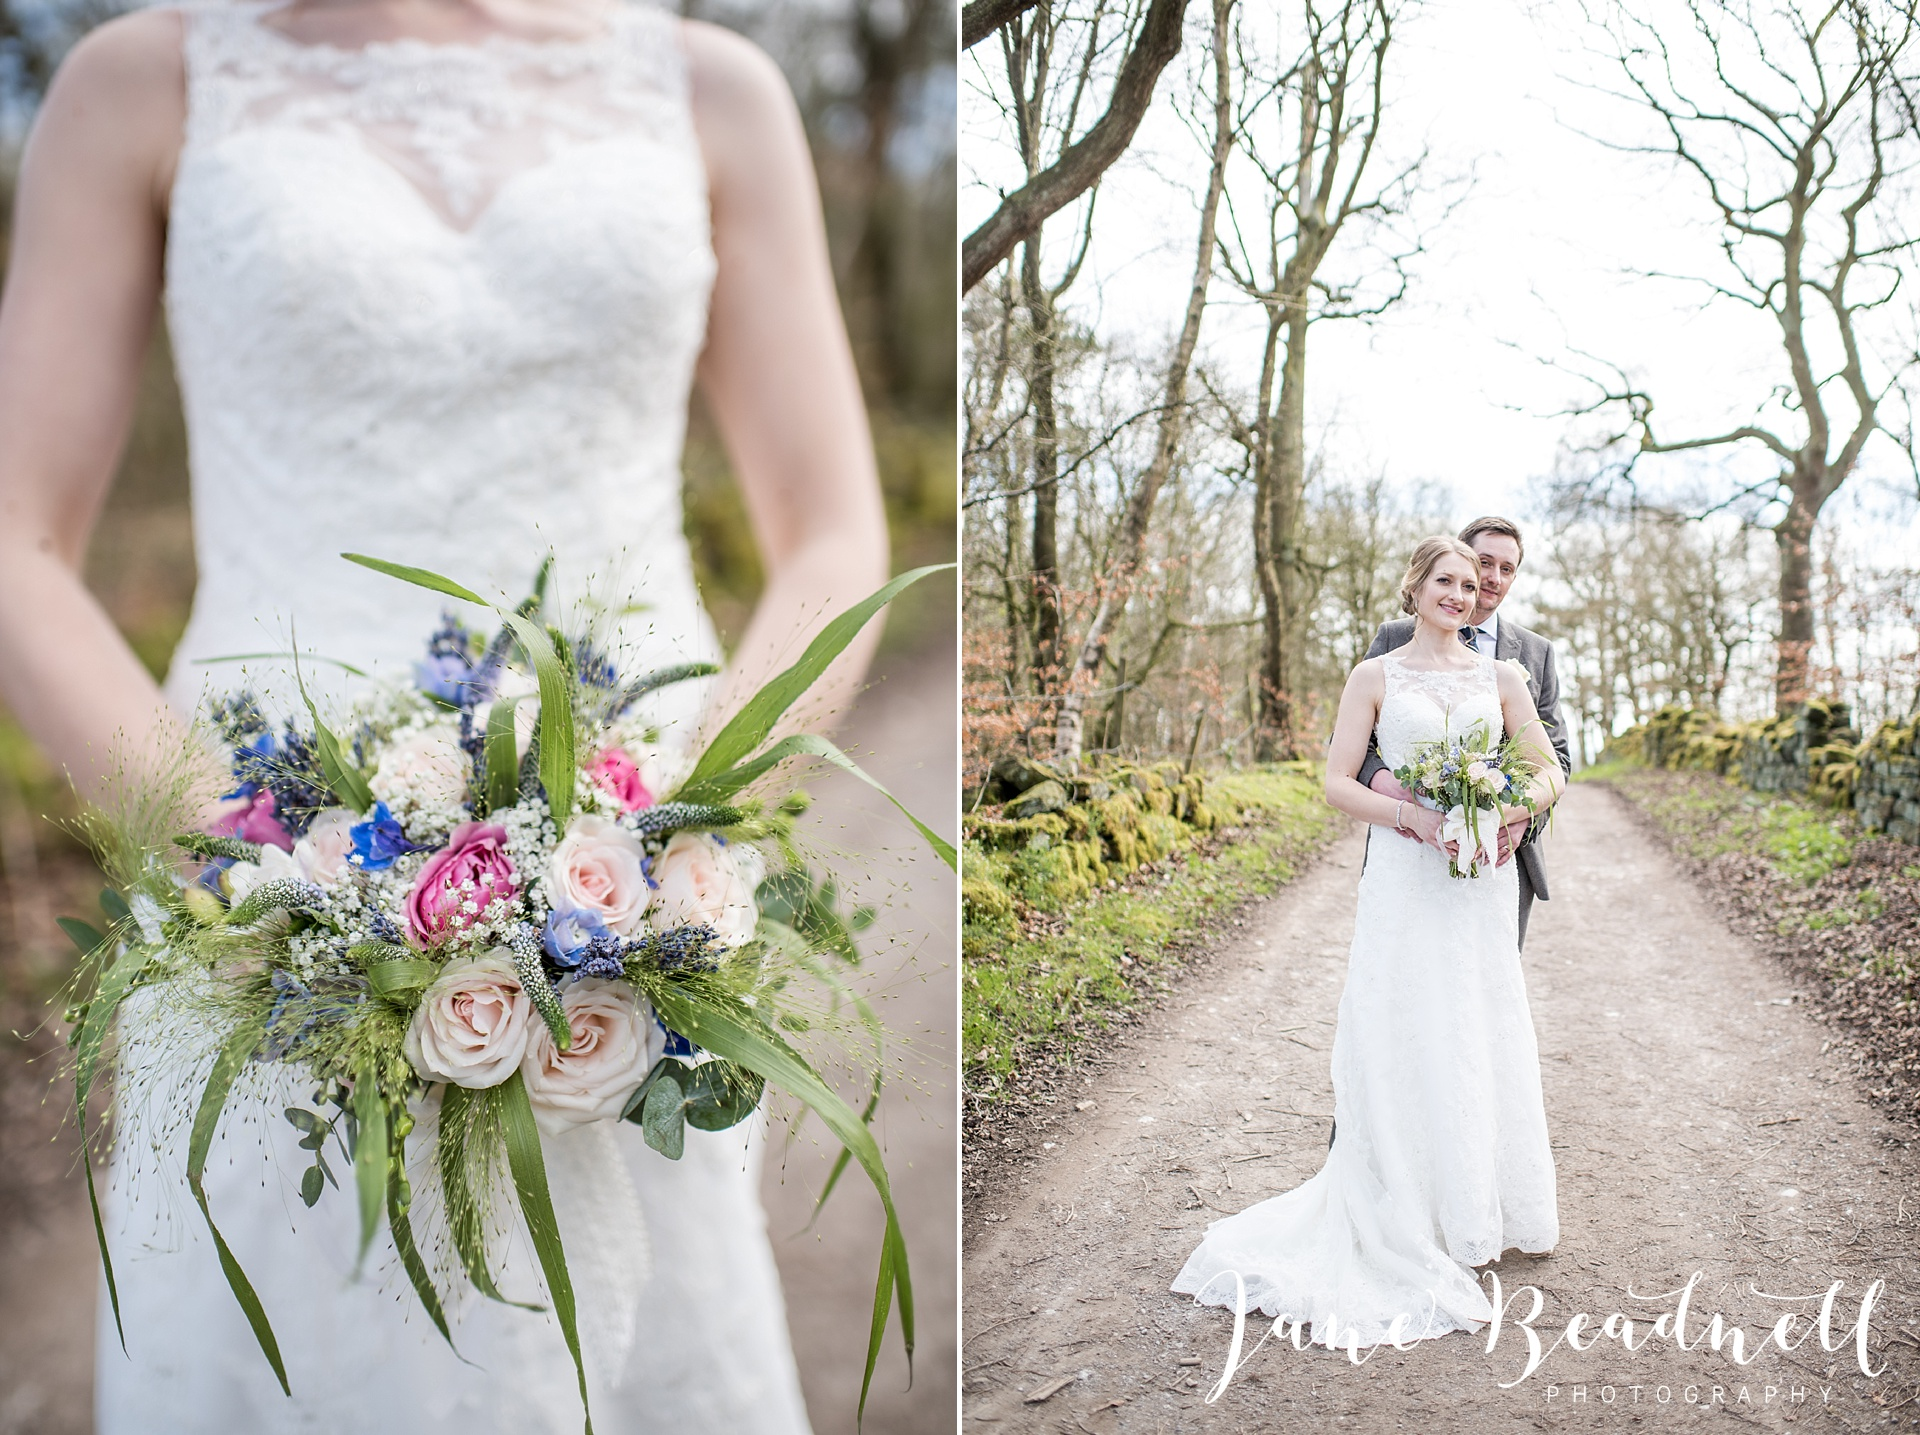 Otley Chevin Lodge wedding photography by Jane Beadnell Photography Leeds_0115